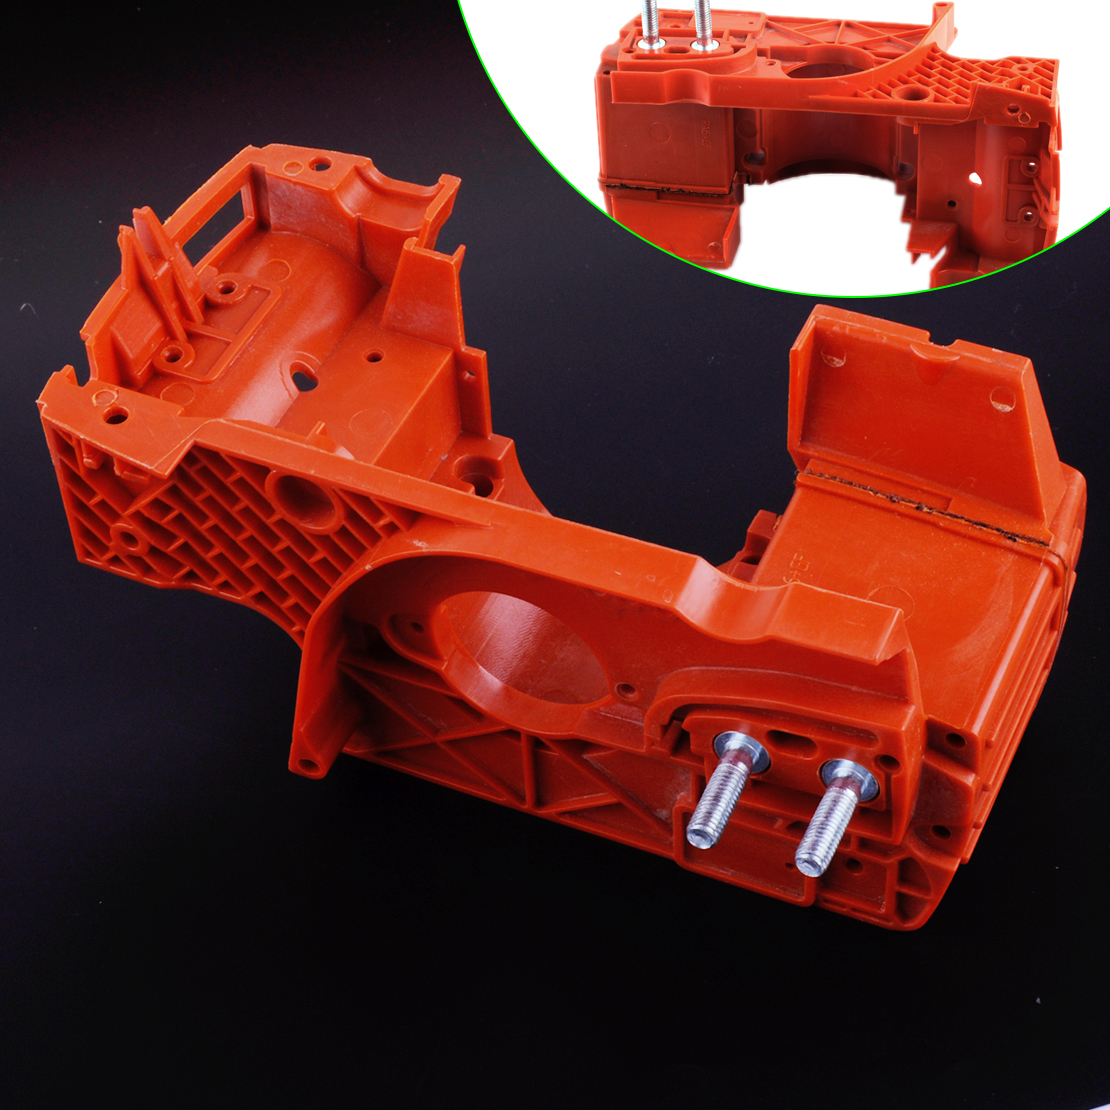 LETAOSK Crankcase Engine Housing Oil Tank Fit for HUSQVARNA 137 142 Chainsaw Part 530071991Accessories image